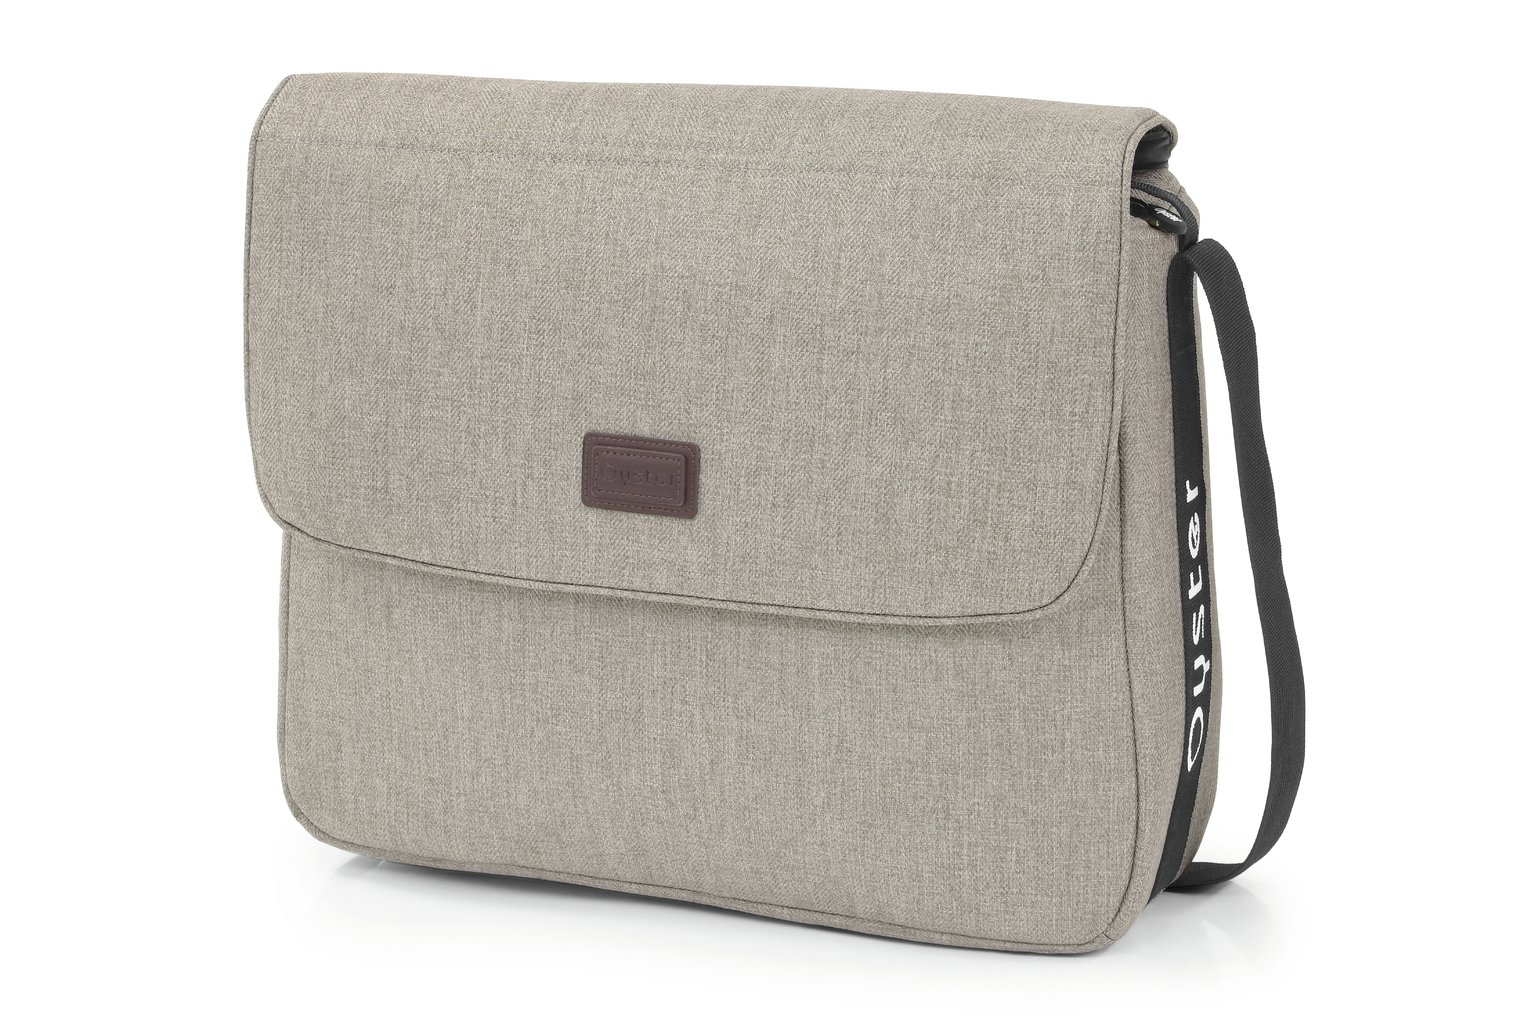 Oyster 3 Changing Bag - Pebble